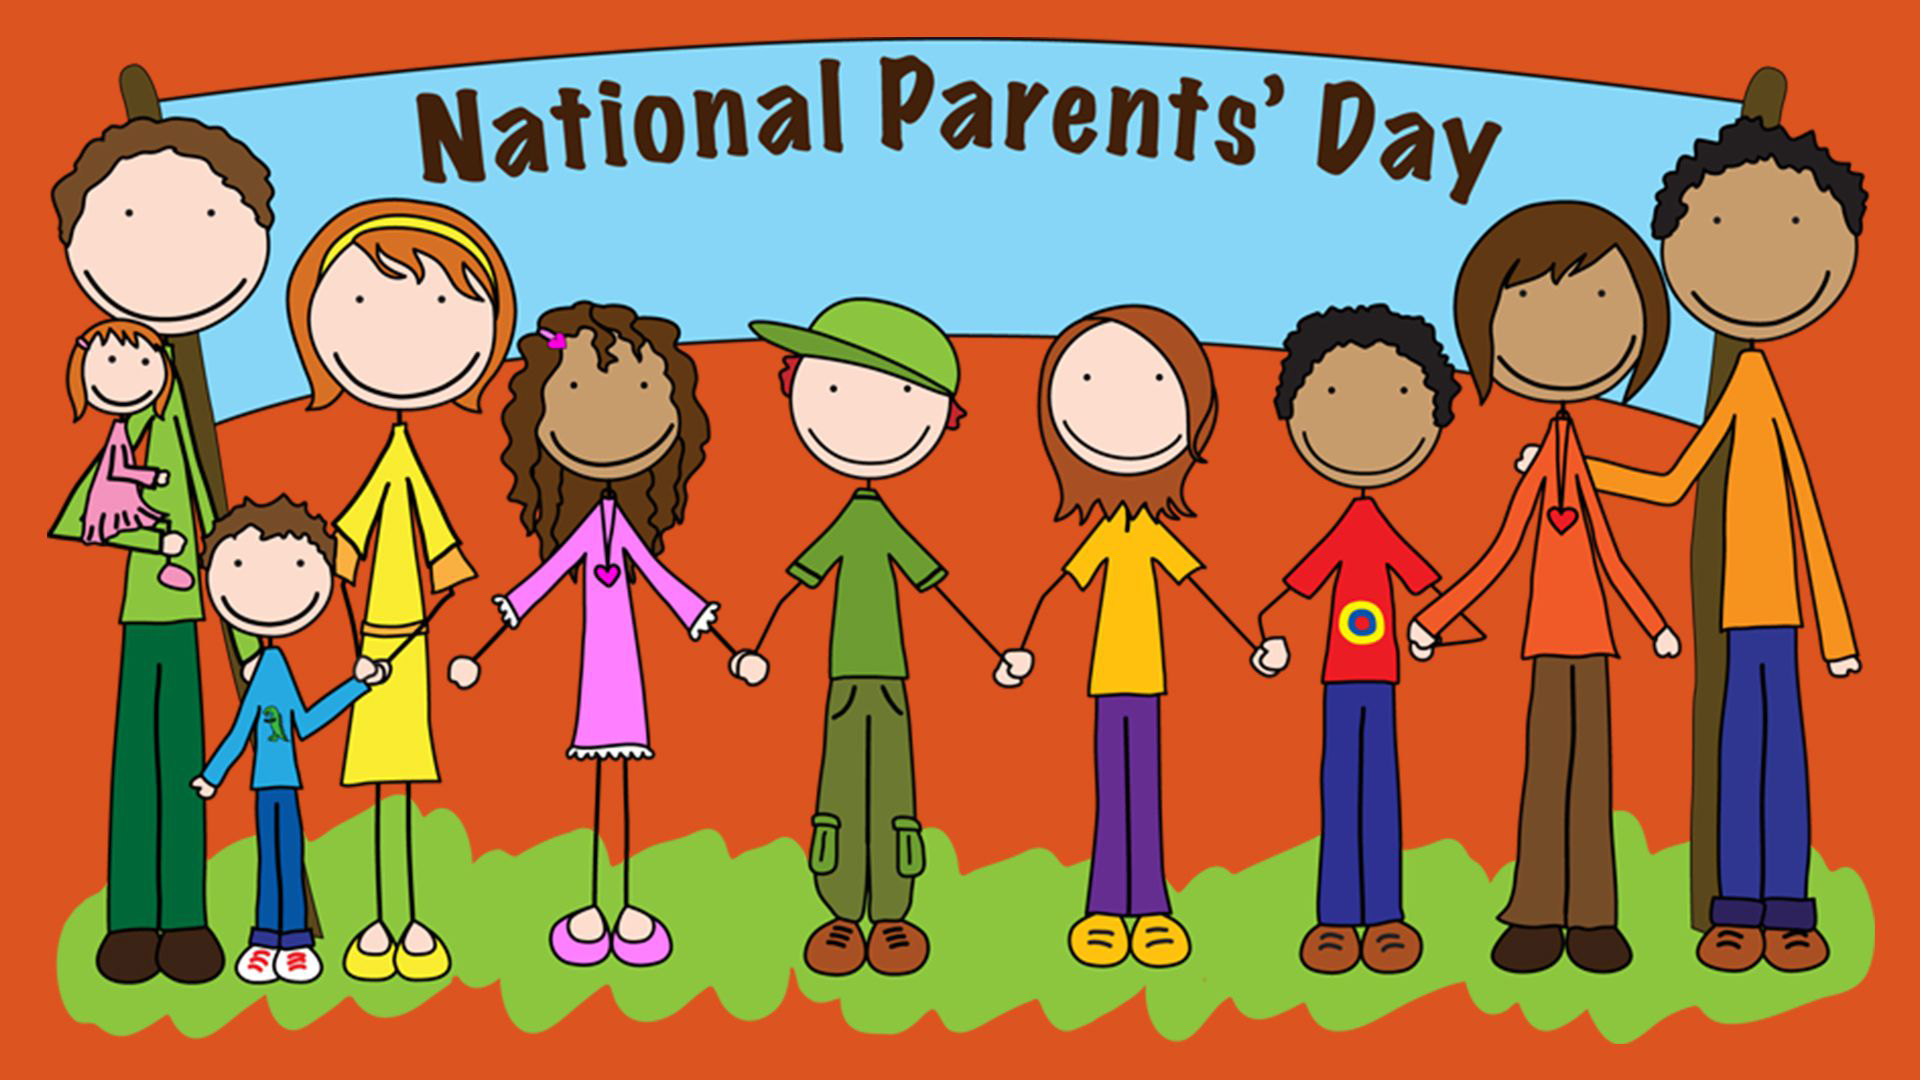 Happy National Parents Day Wallpaper Images 1920x1080